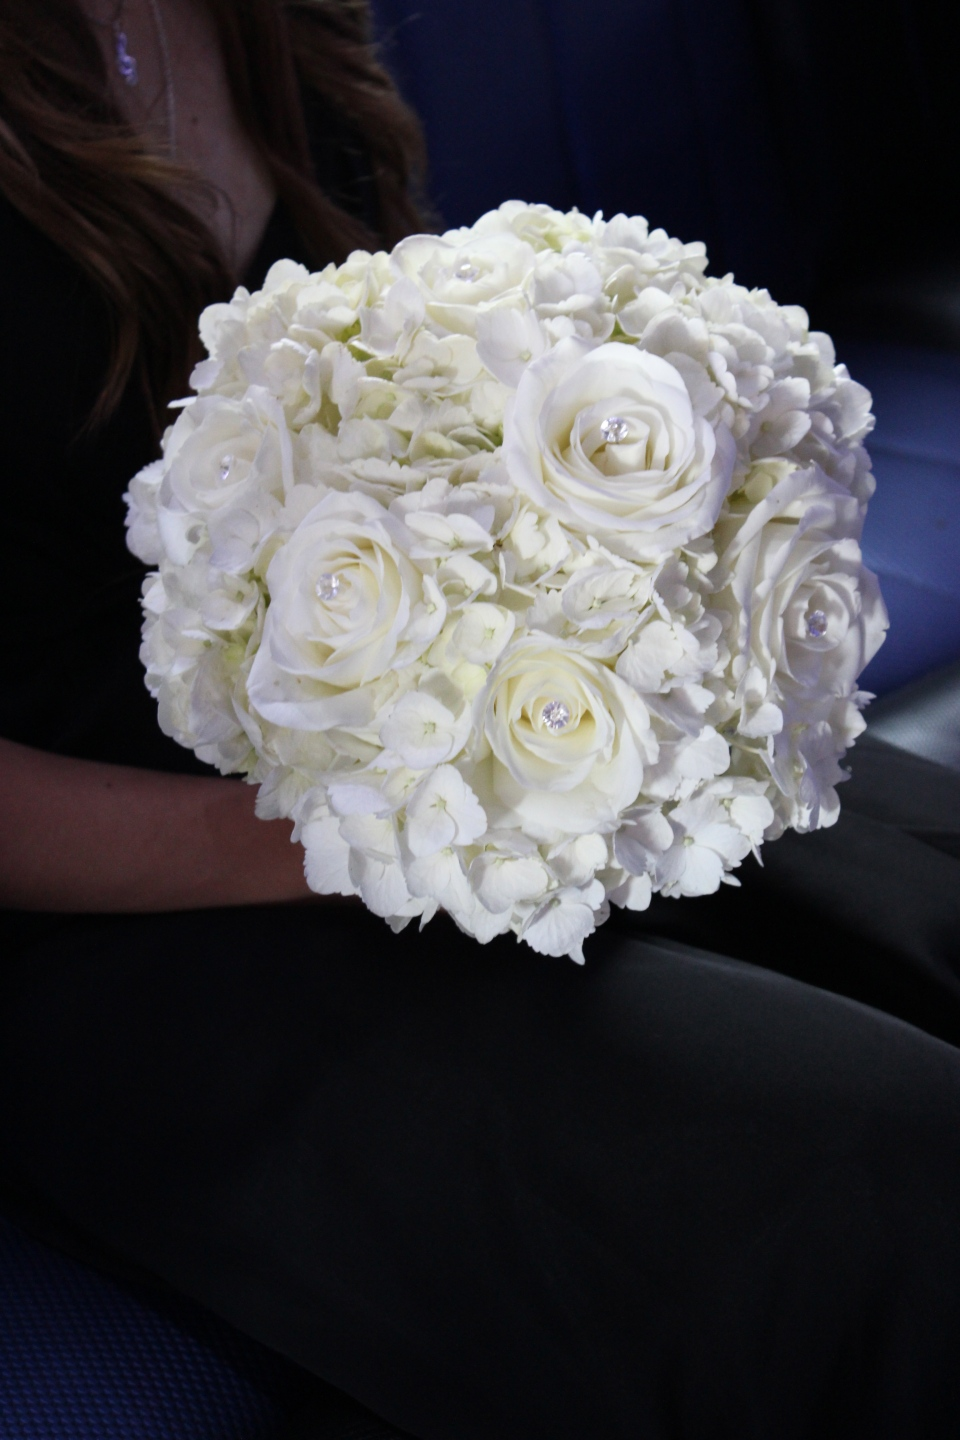 White hydrangea and rose bouquet